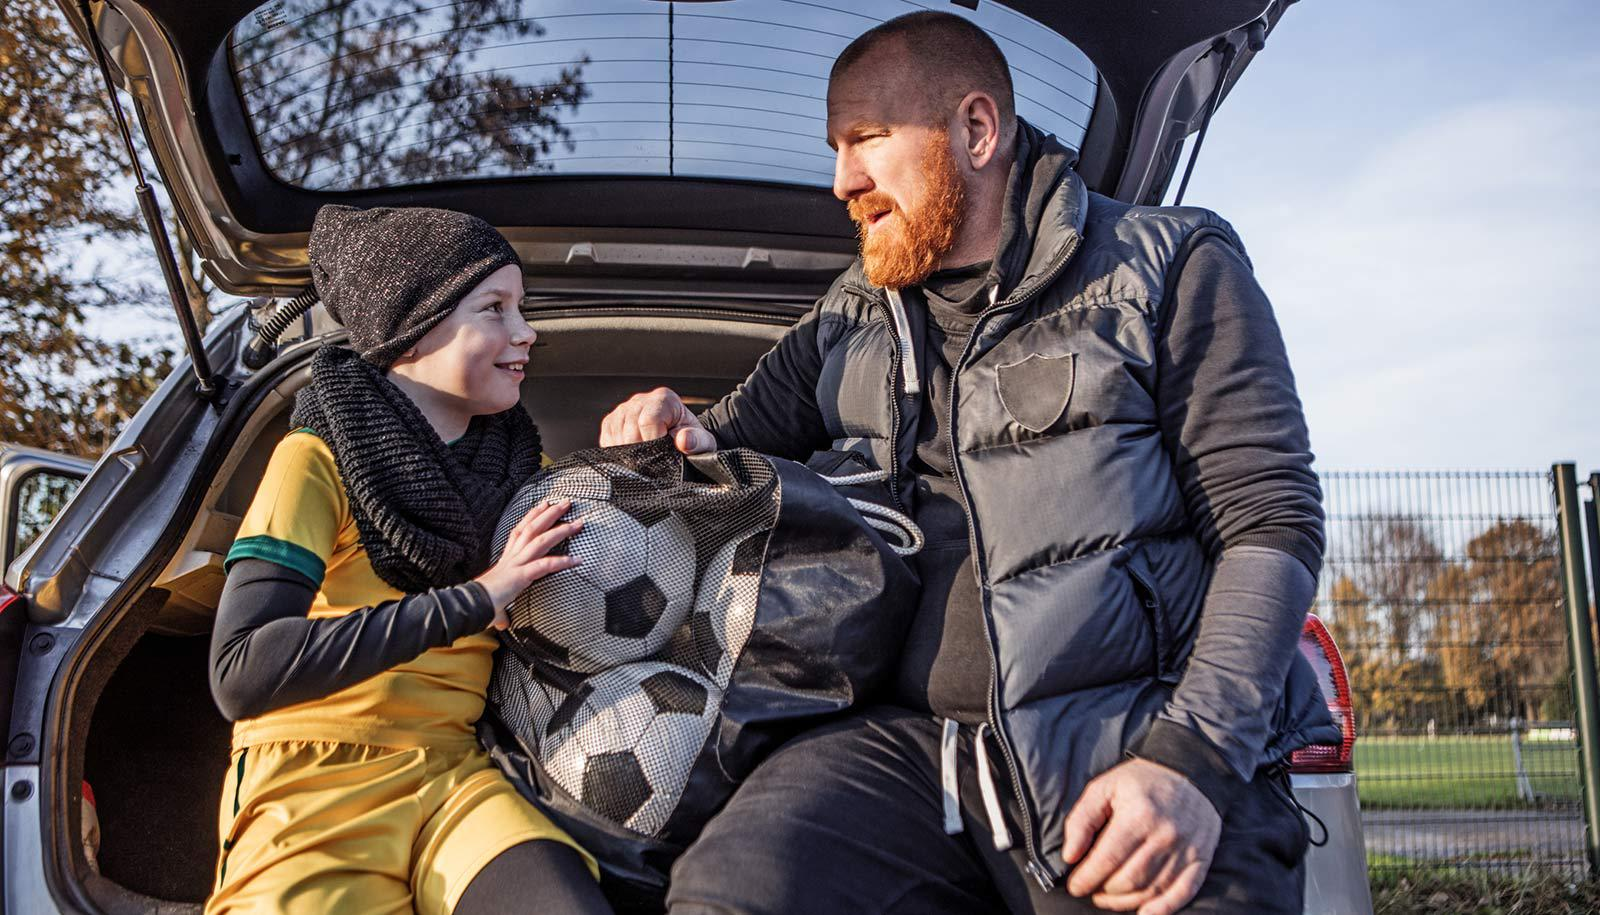 father and daughter sit in back of car with soccer balls